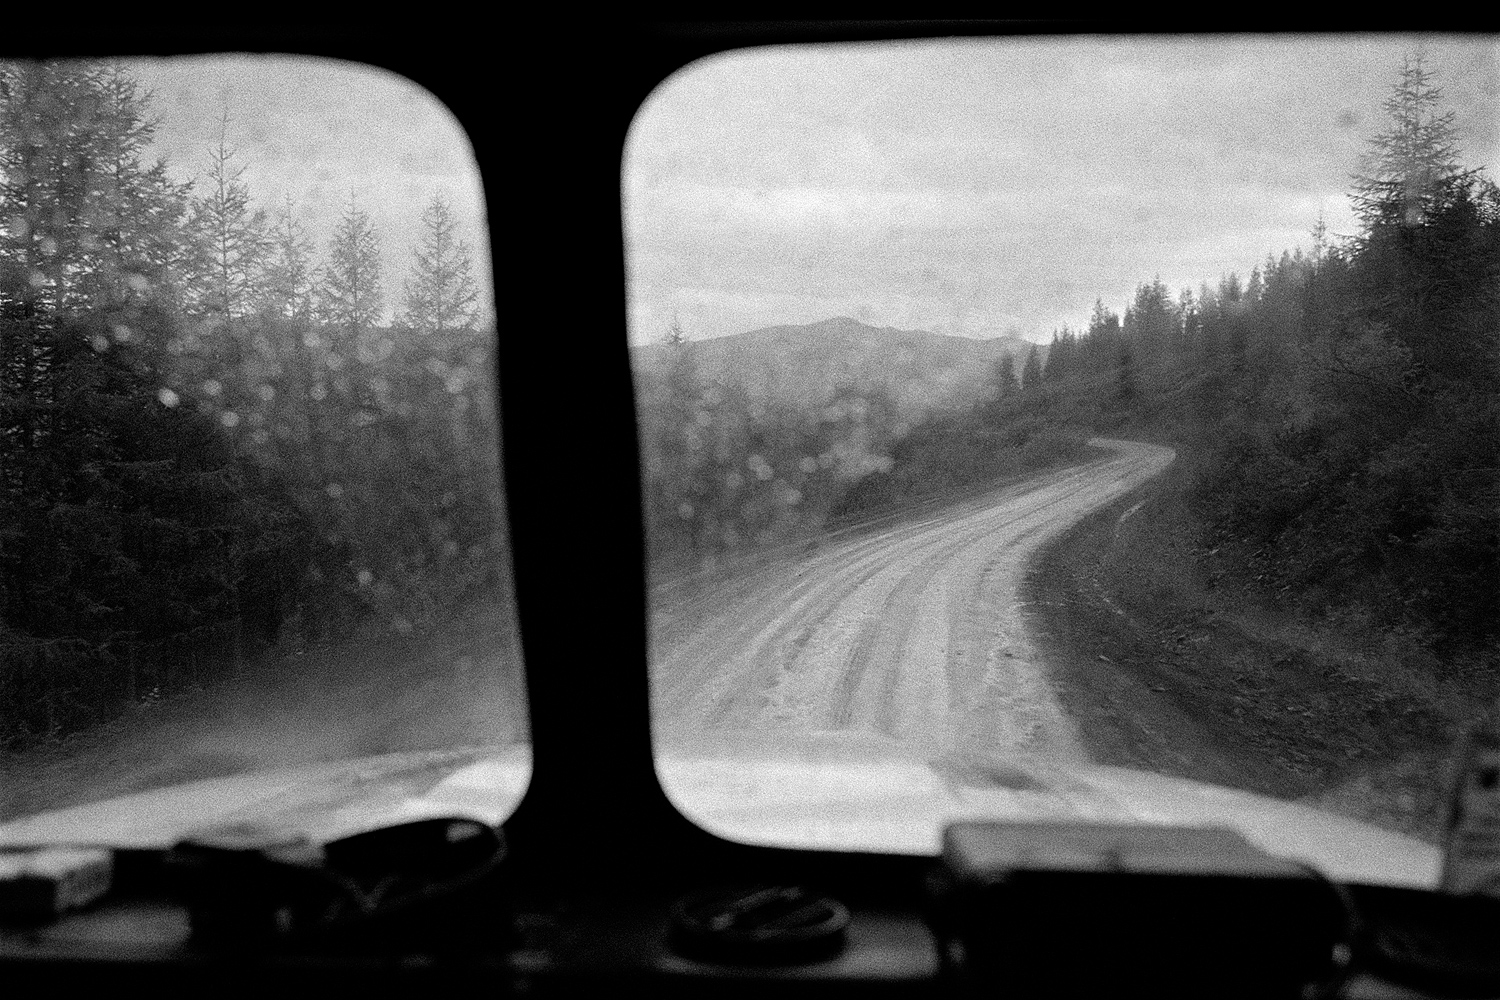 The Kolyma highway is the main road in the Magadan region. The track was built in the 1930-50s, mainly by labor camp prisoners.